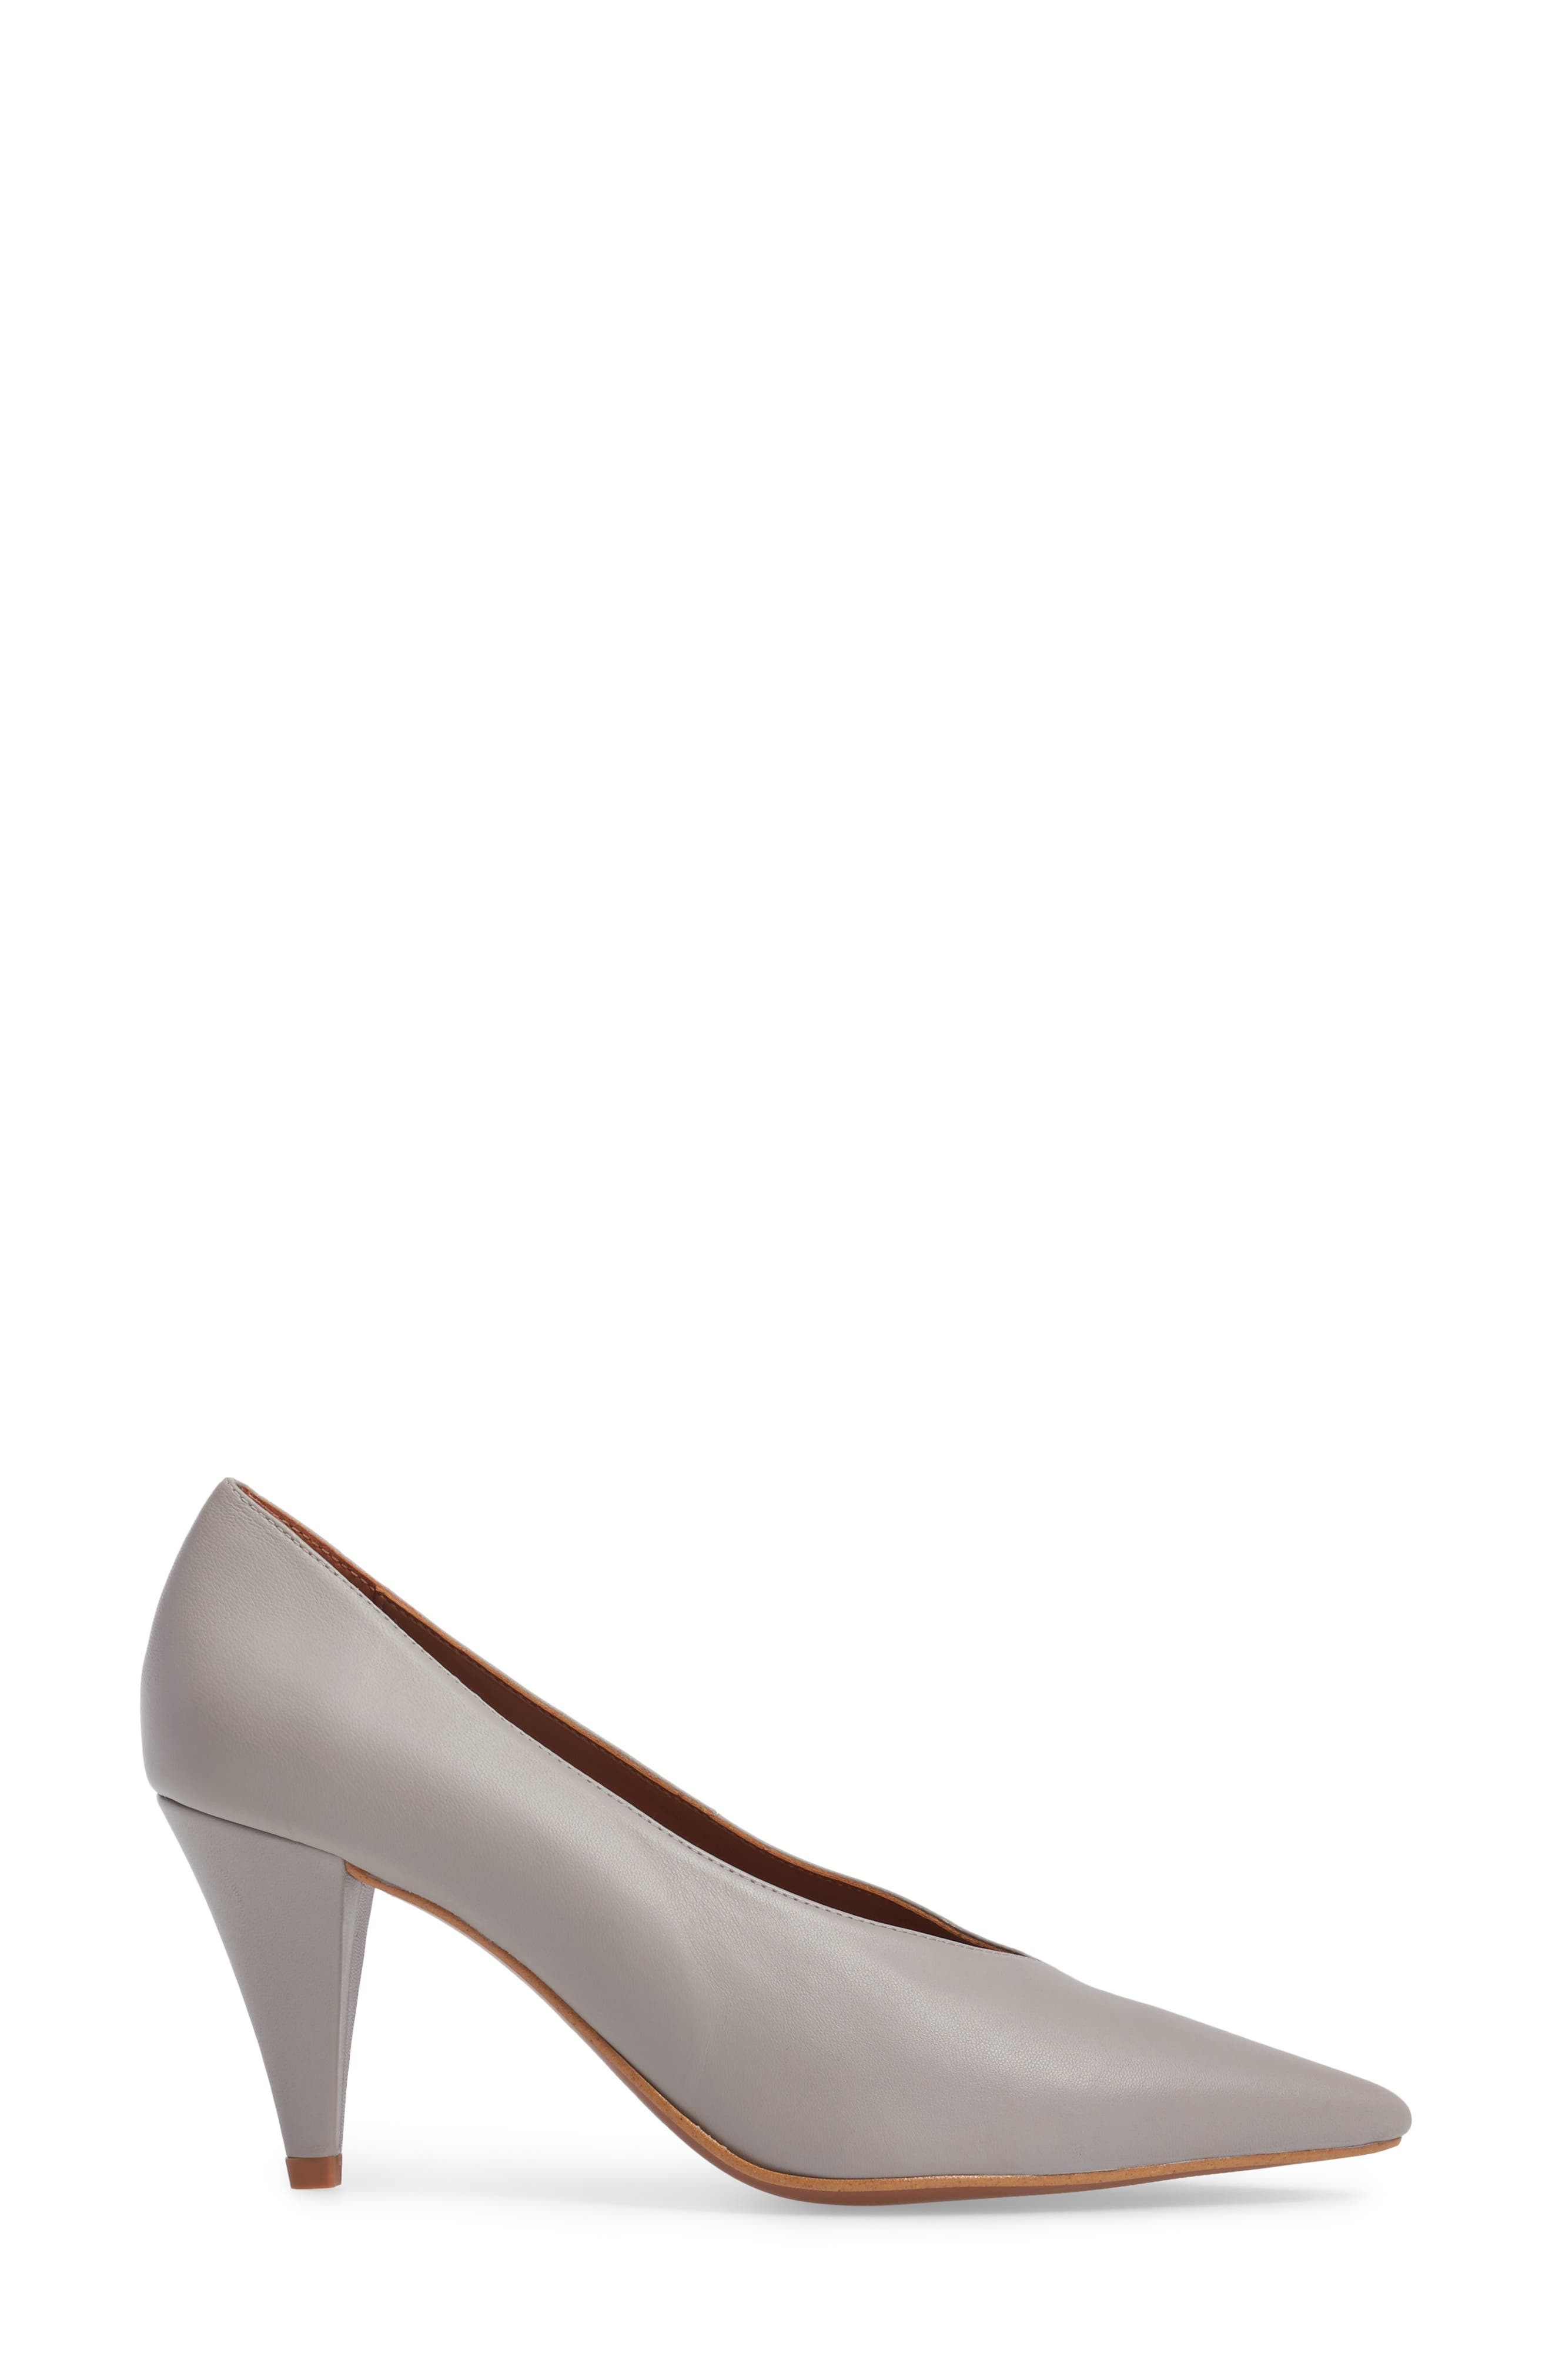 Journal Pointy Toe Pump,                             Alternate thumbnail 3, color,                             020